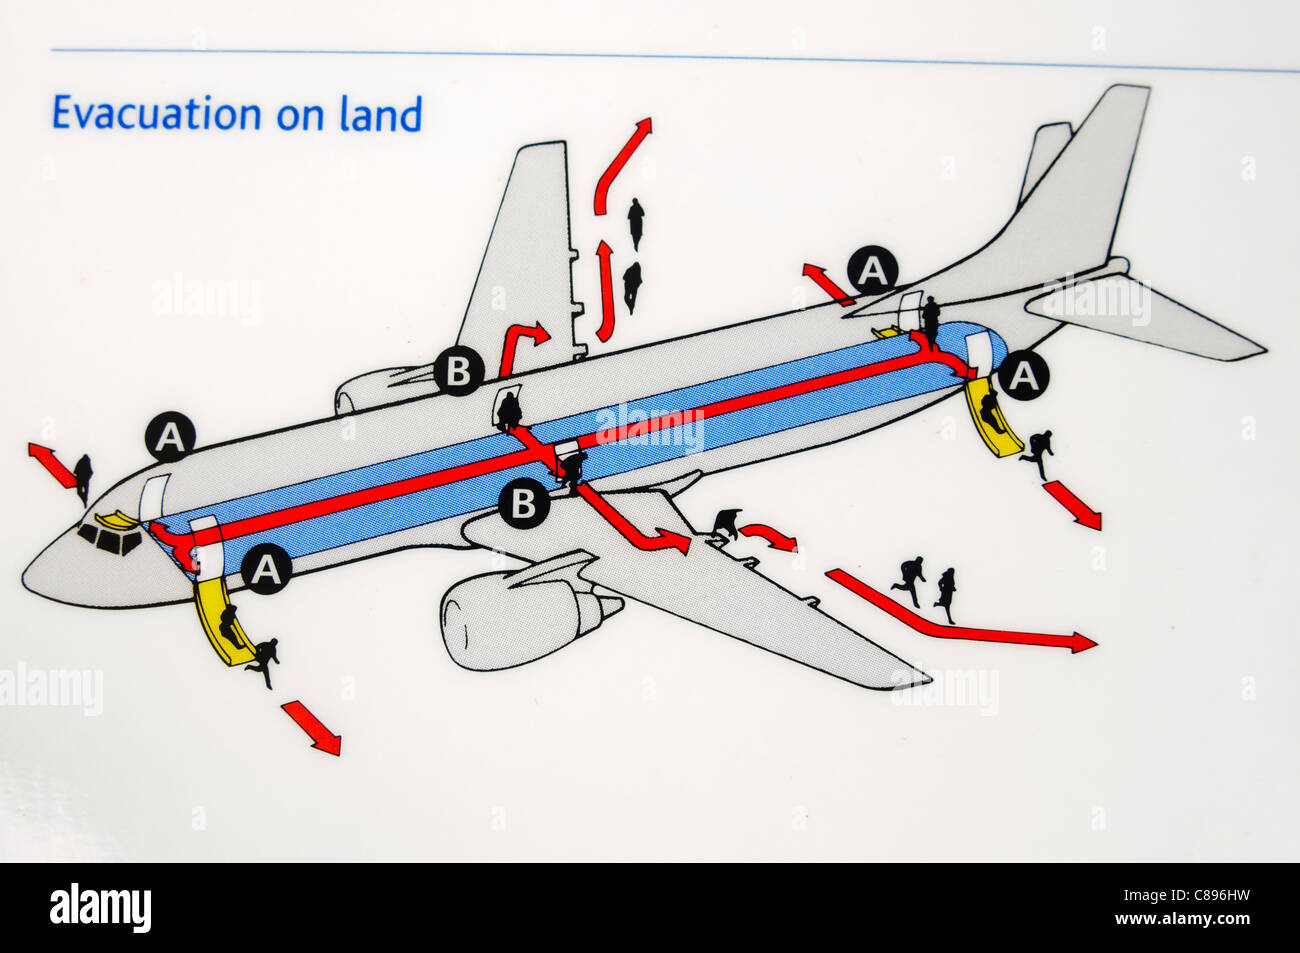 Closeup of an airline safety card showing how to evacuate in the event of an emergency landing on land - Stock Image